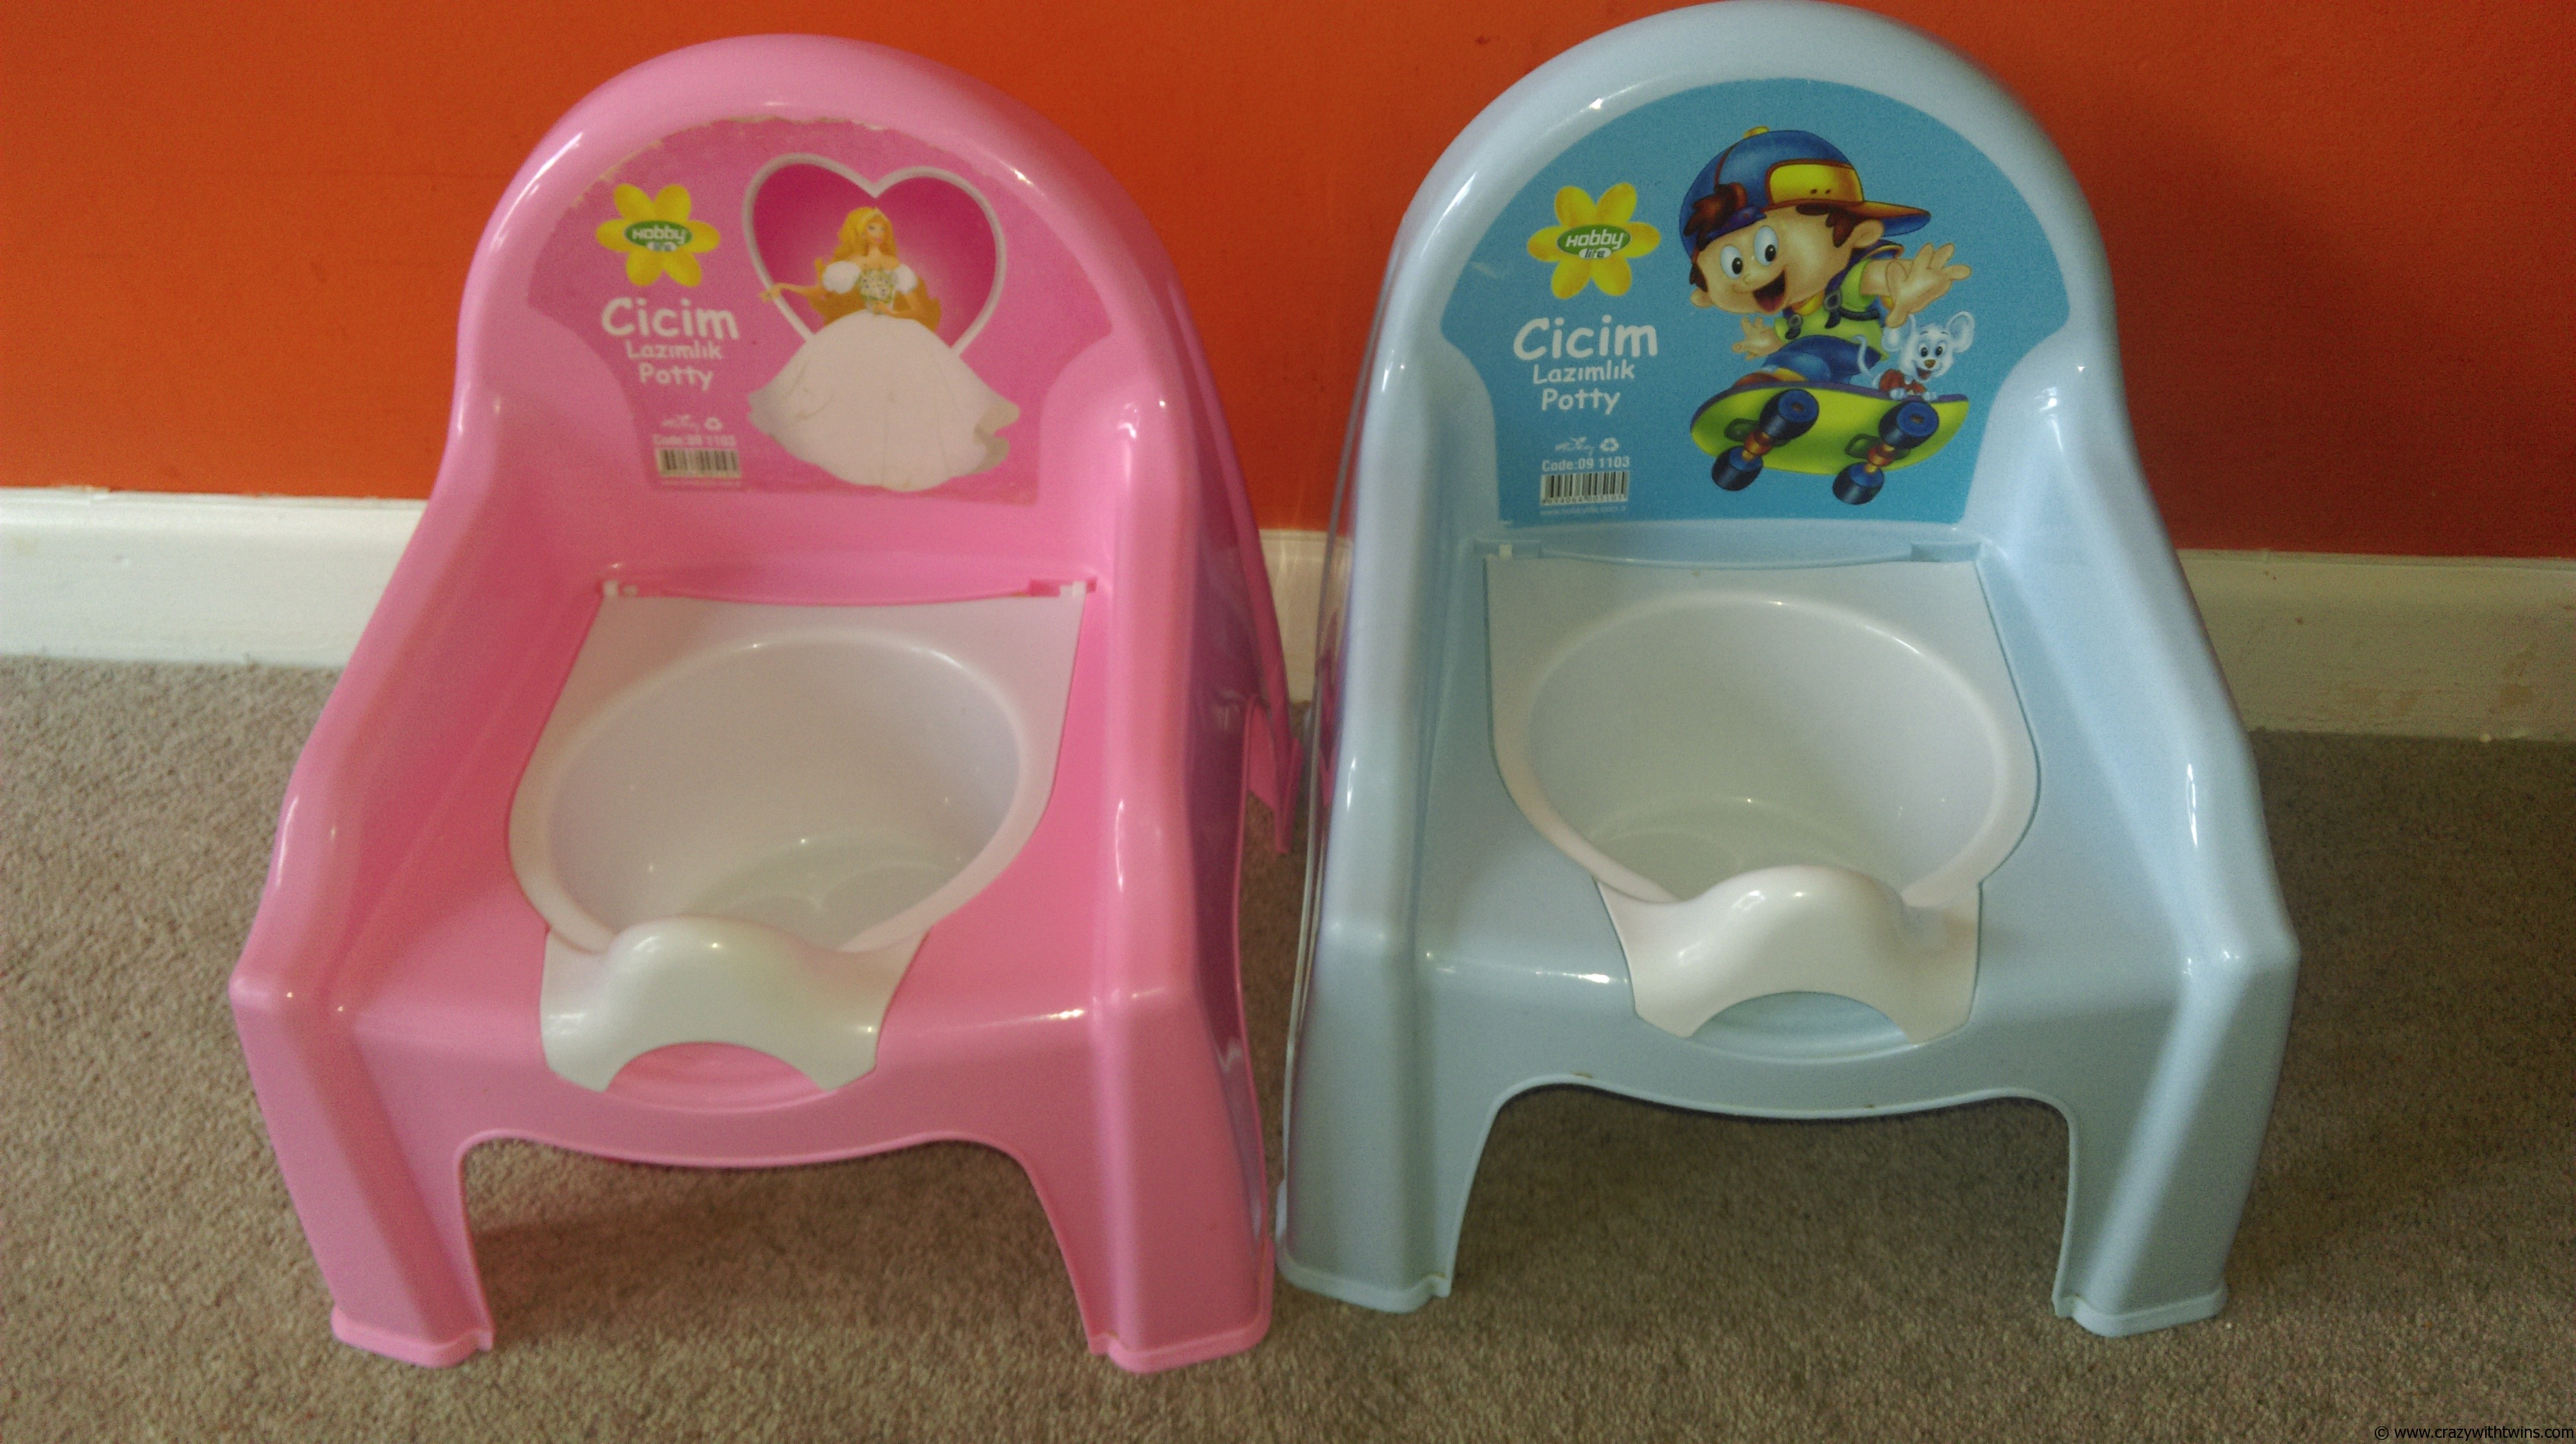 Fine Best Potty Chair Asda Toilet Potty Potty Chair Gmtry Best Dining Table And Chair Ideas Images Gmtryco